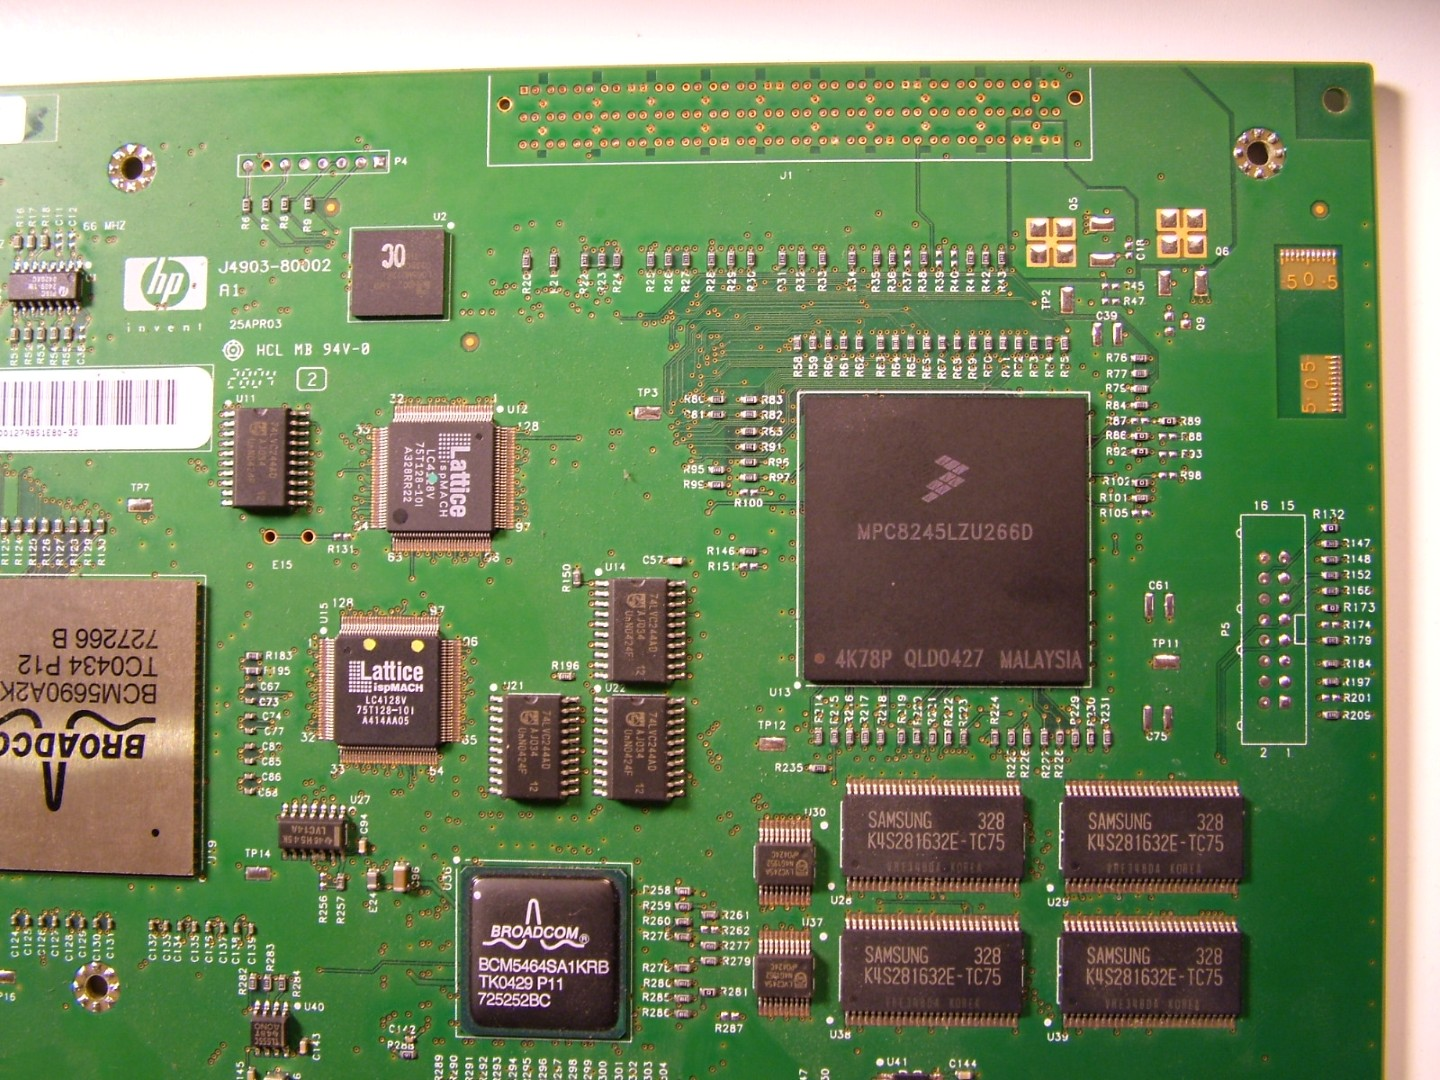 The Life Of Kenneth Tear Down An Hp Procurve 2824 Ethernet Switch 4 Way Is Hierarchical Switching Hardware Which Operates As Independent System From Processor To Frames One Port Another